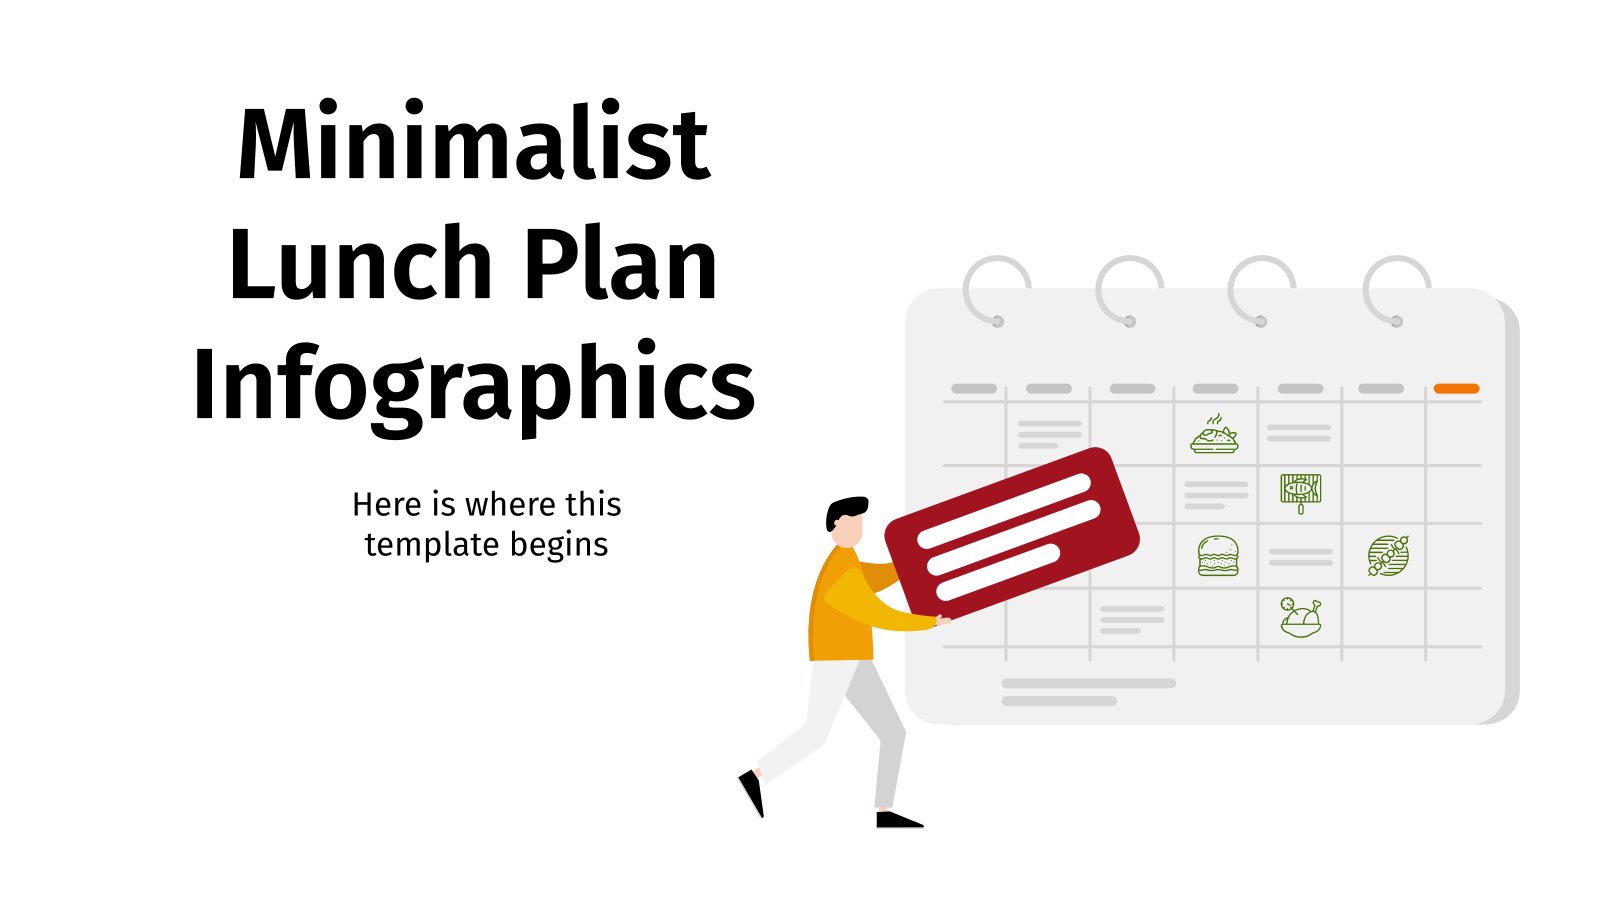 Minimalist Lunch Plan Infographics presentation template